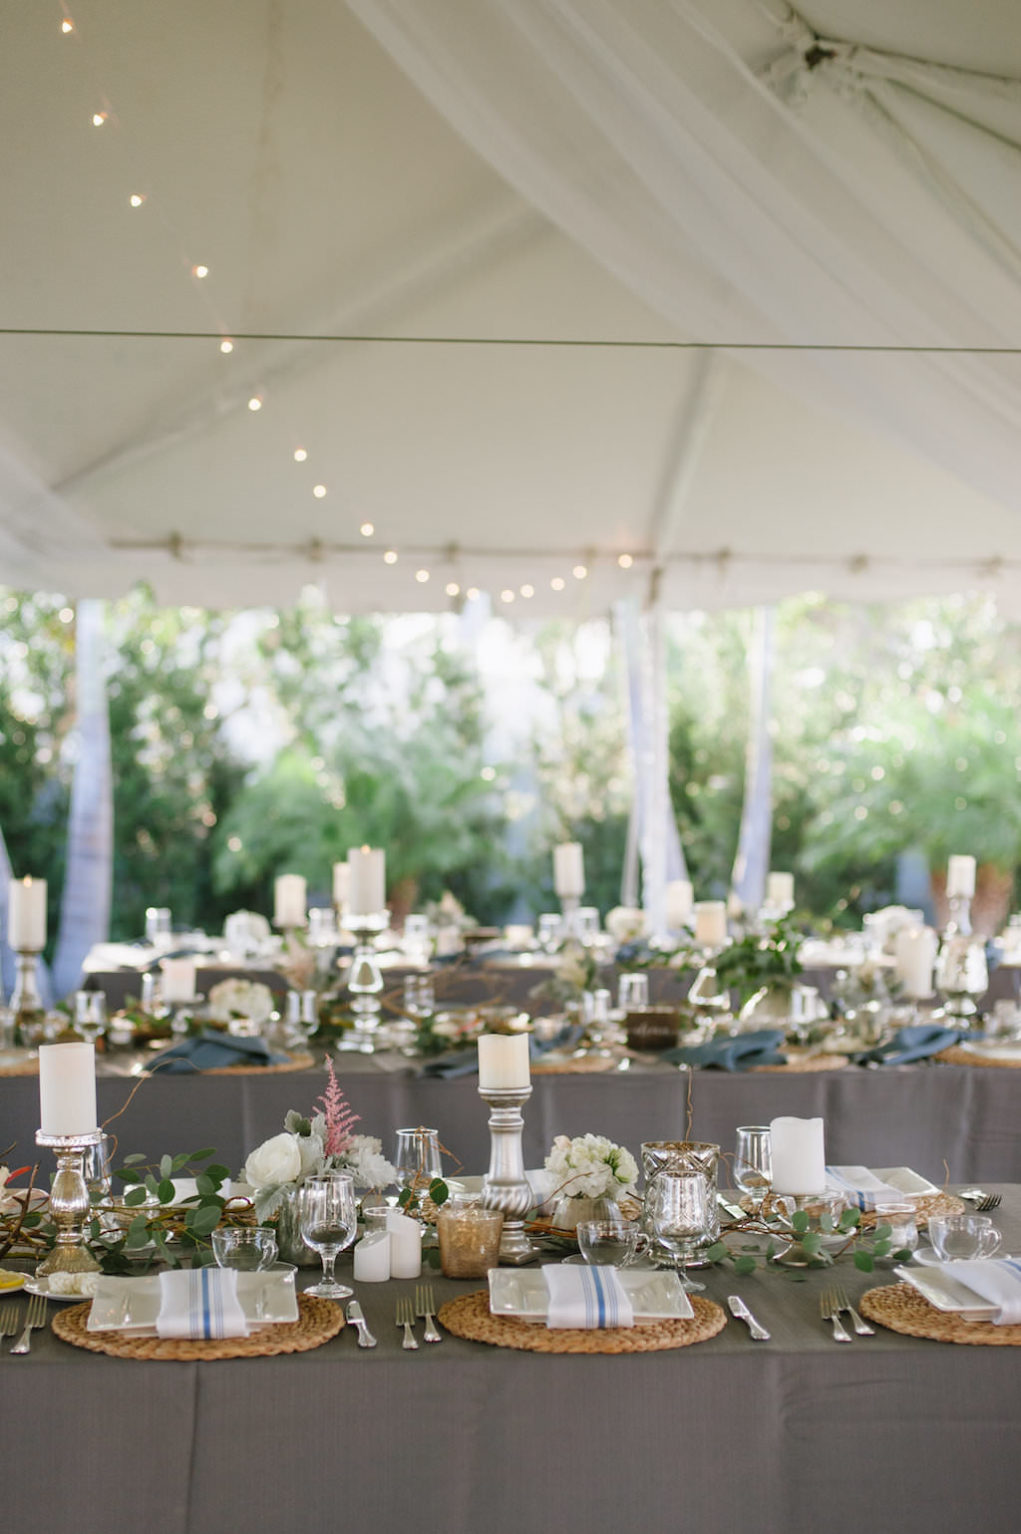 Outdoor Tented Wedding Reception with Organic Greenery Inspired Decor, Long Feasting Tables and Candle Centerpieces | Sarasota Wedding Planner Jennifer Matteo Event Planning